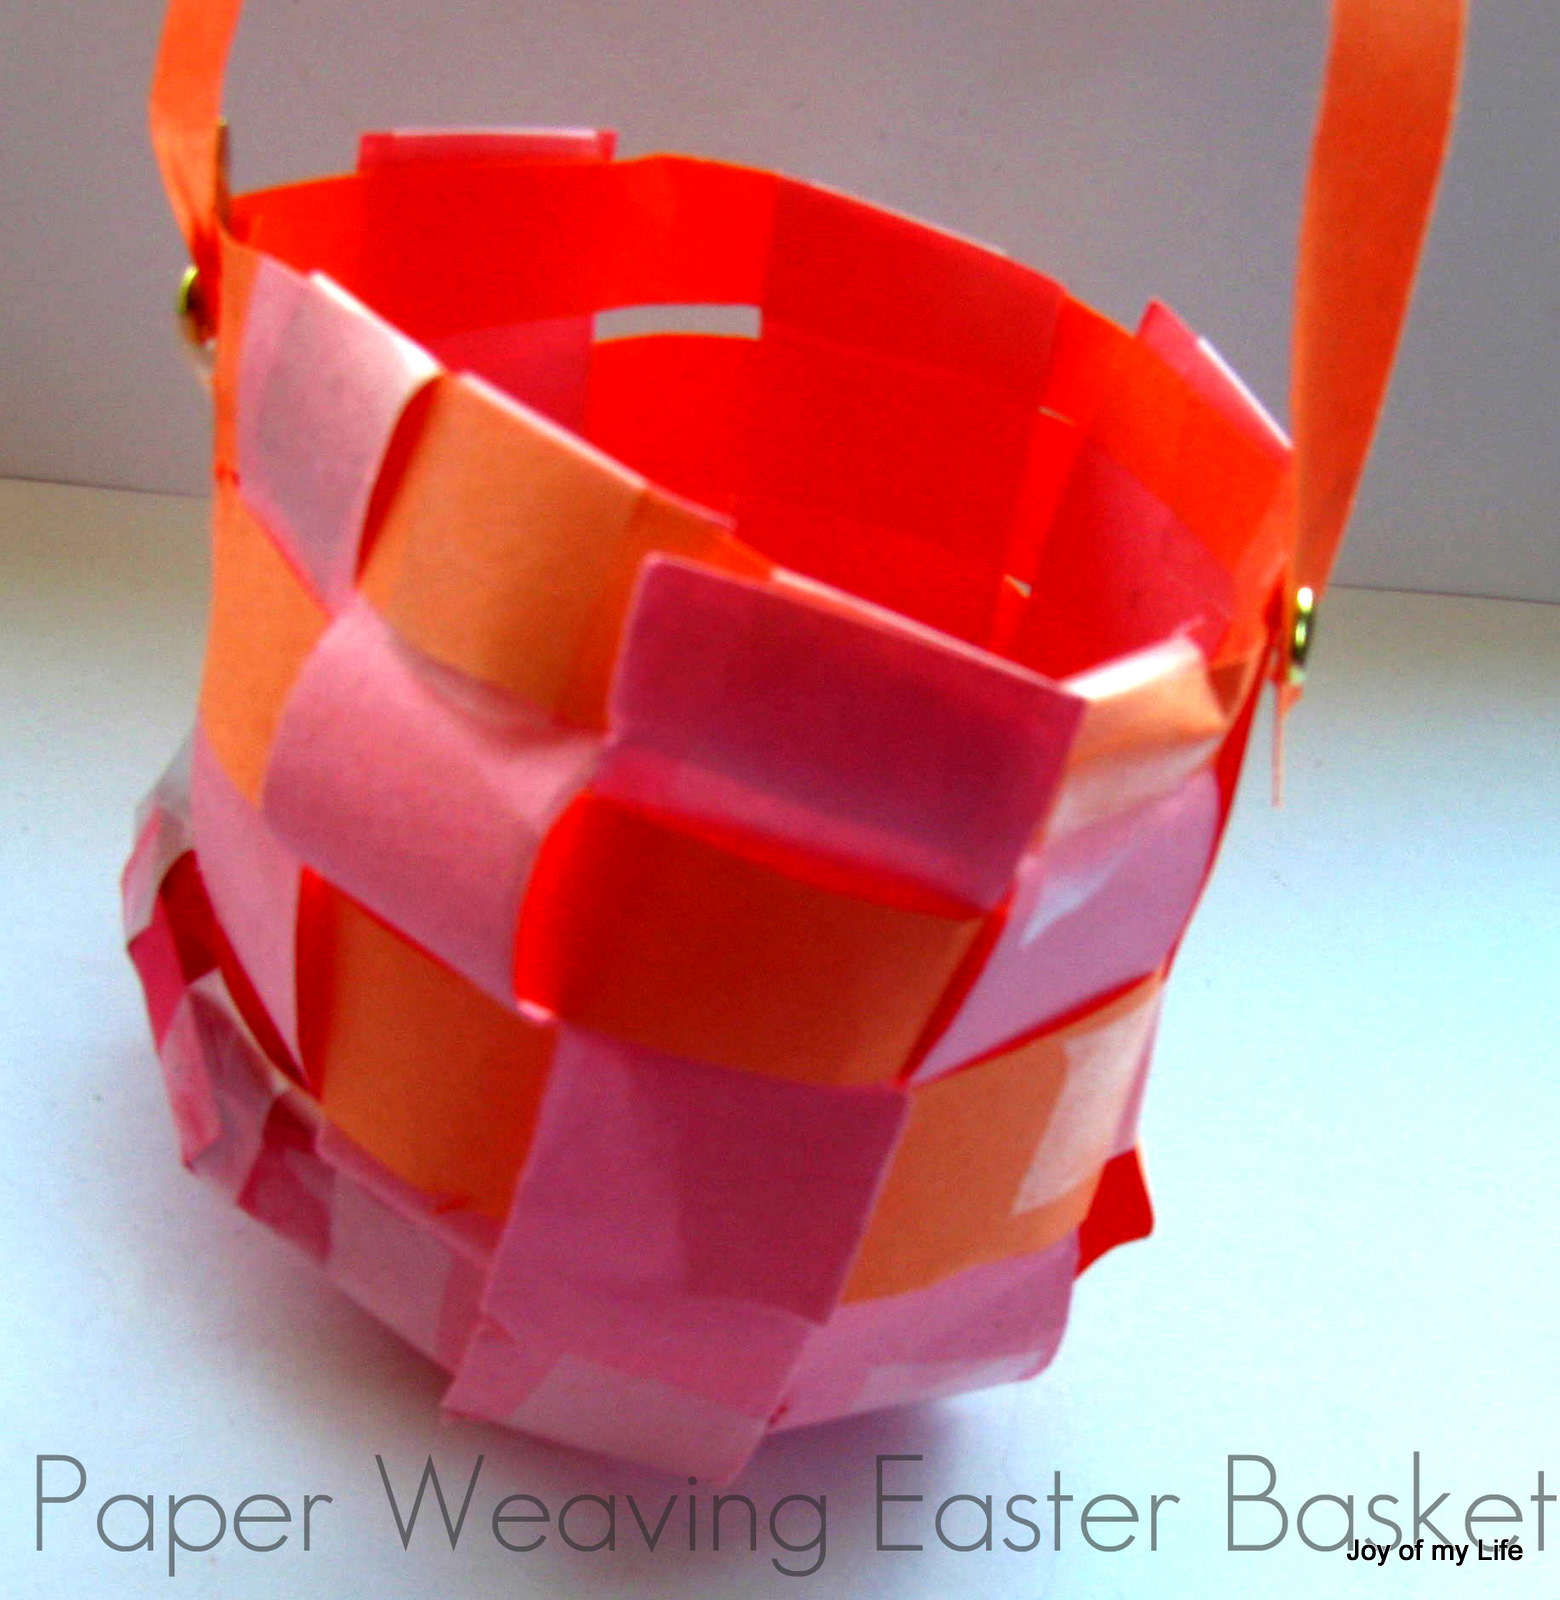 How To Weave A Basket Using Construction Paper : The joy of my life and other things february